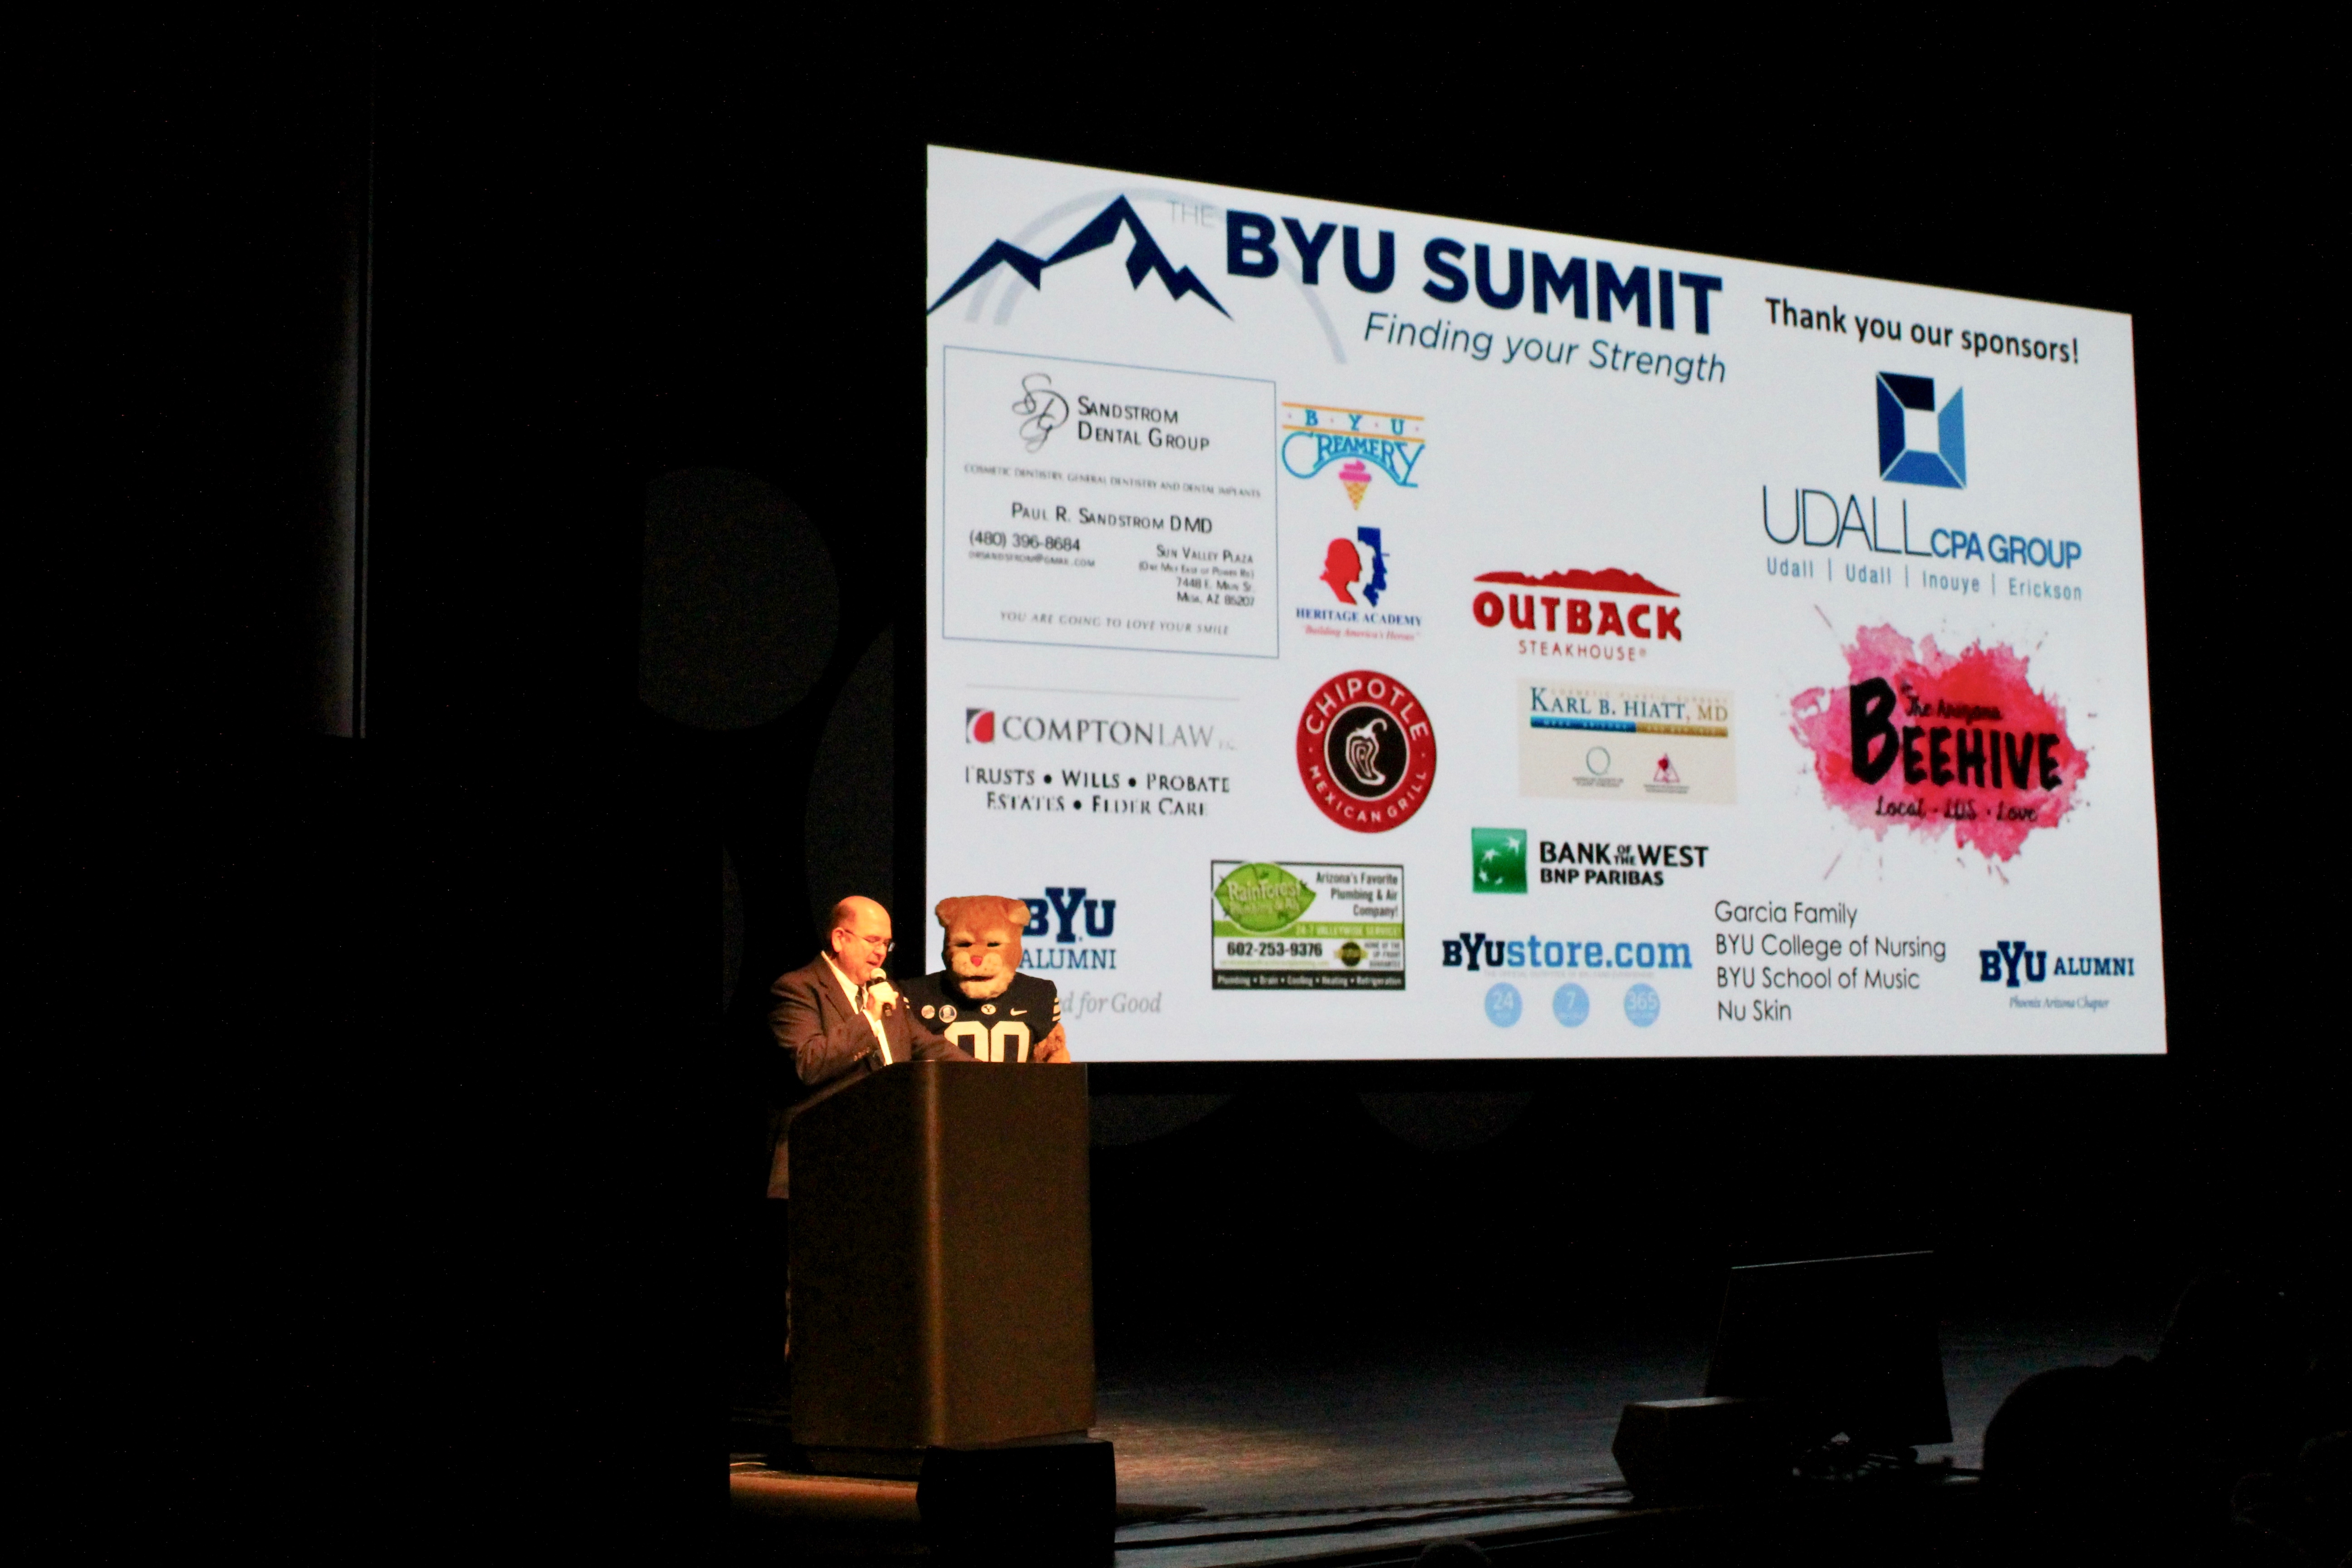 Duane Oaks, Cosmo And Sponsor Screen on stage at The Summit. Photo by BYU Alumni Association.